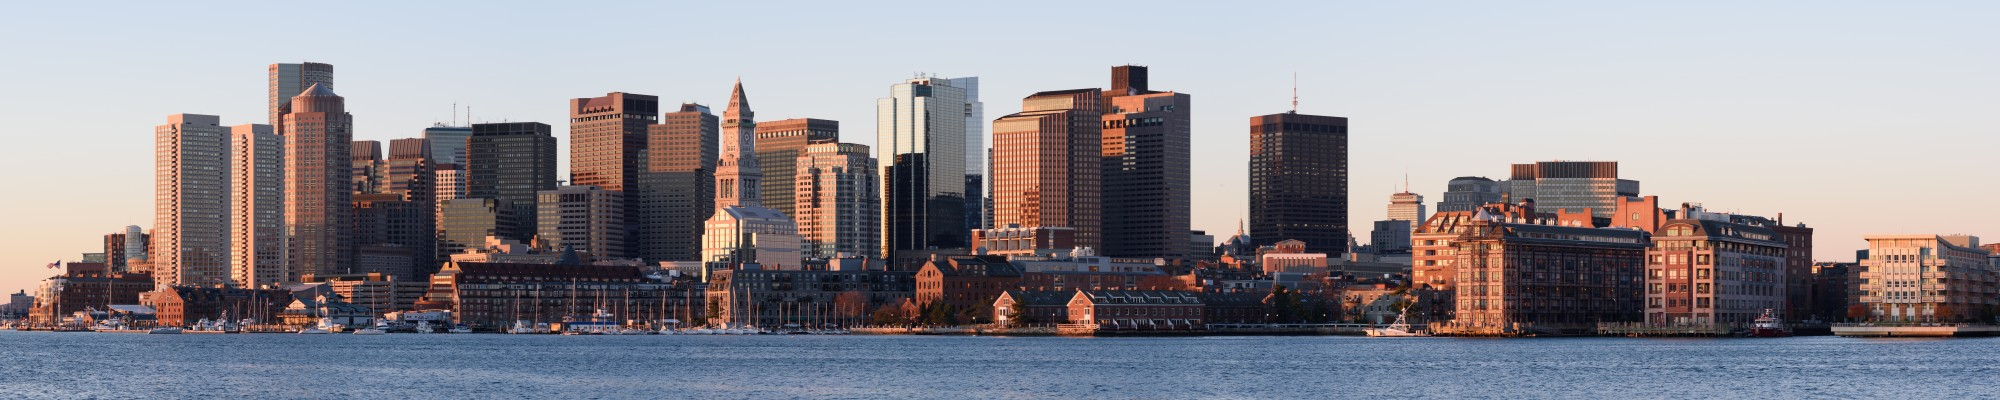 Boston skyline from East Boston November 2016 panorama 3